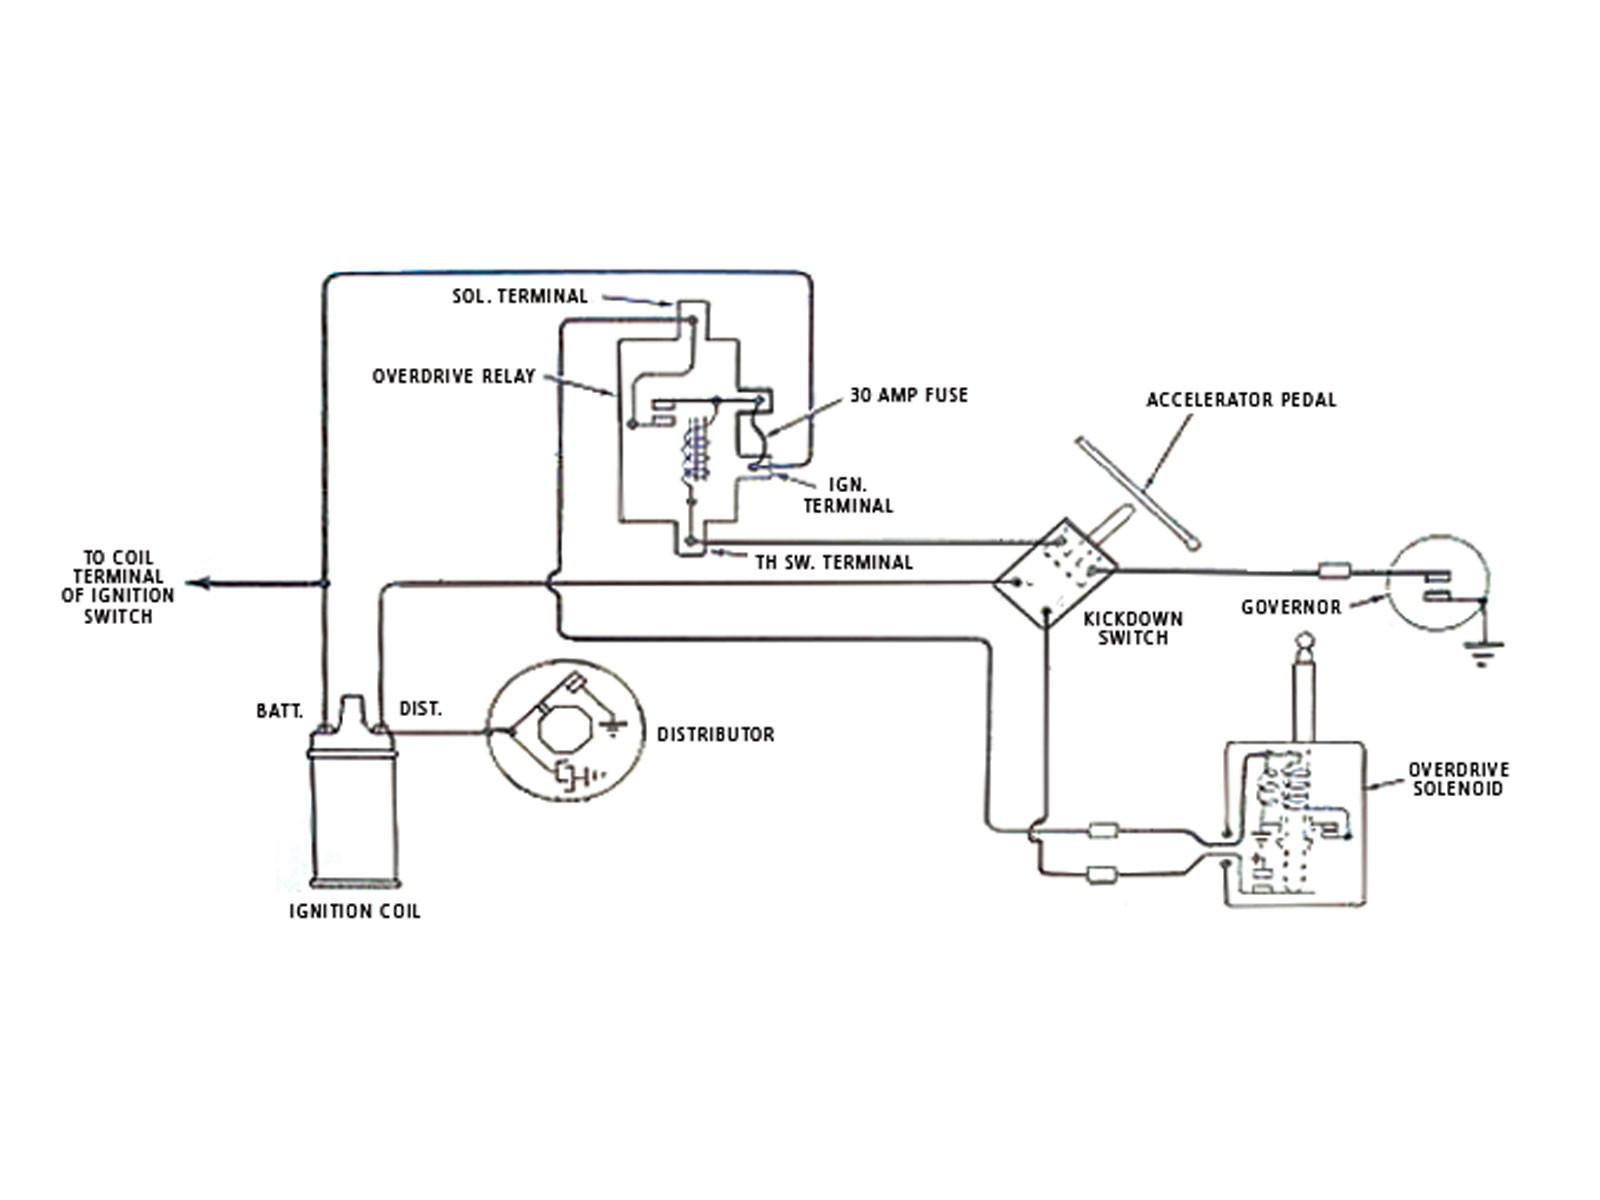 timer relay wiring diagram Collection-Wiring Diagram Timer Relay Valid Wiring Diagram Safety Relay Best Basic Od Troubleshooting Chevytalk 17-m